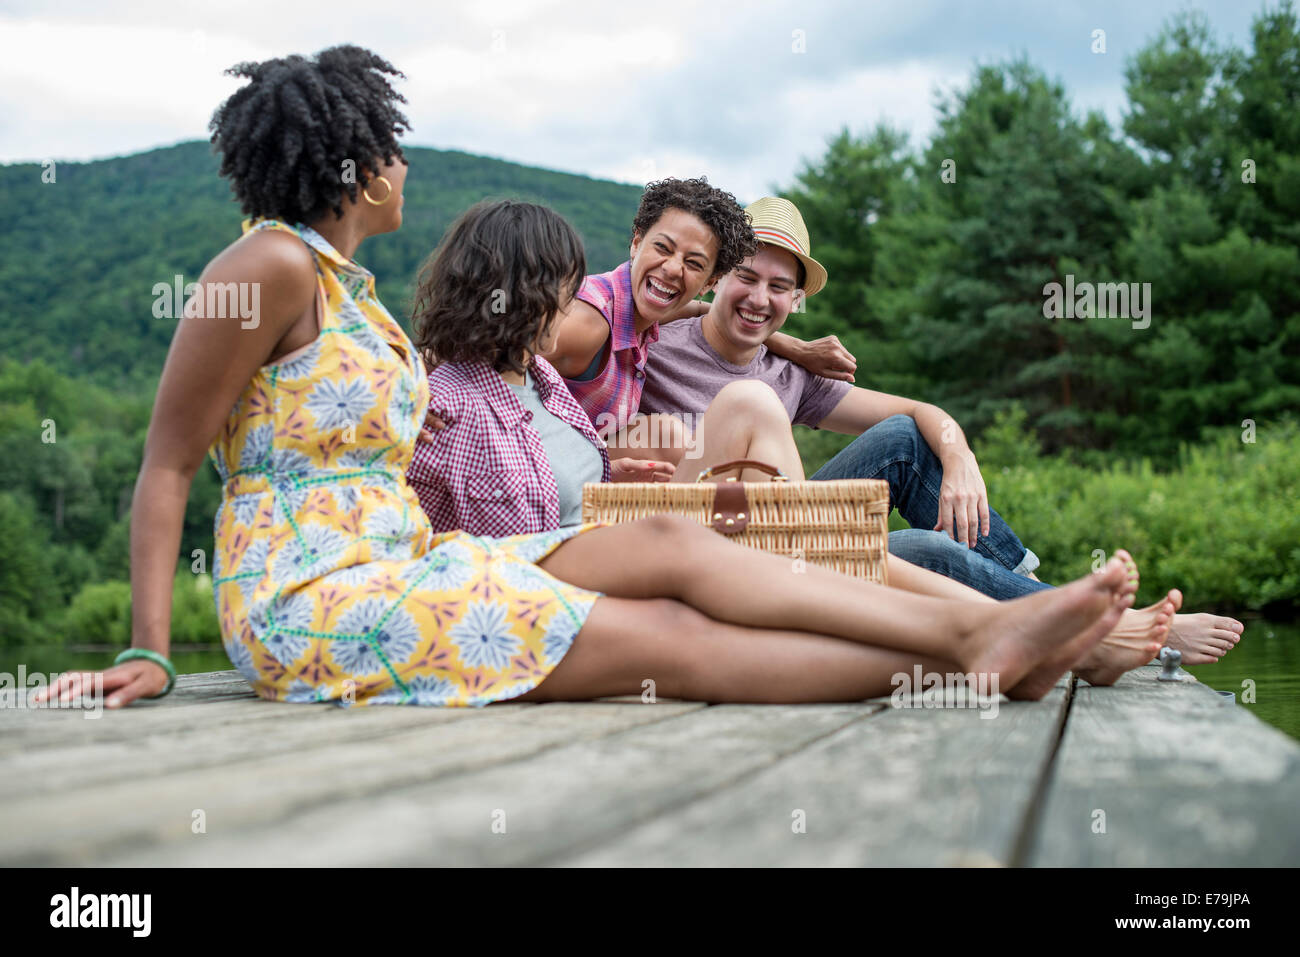 A group of people sitting on a woode pier overlooking a lake. - Stock Image